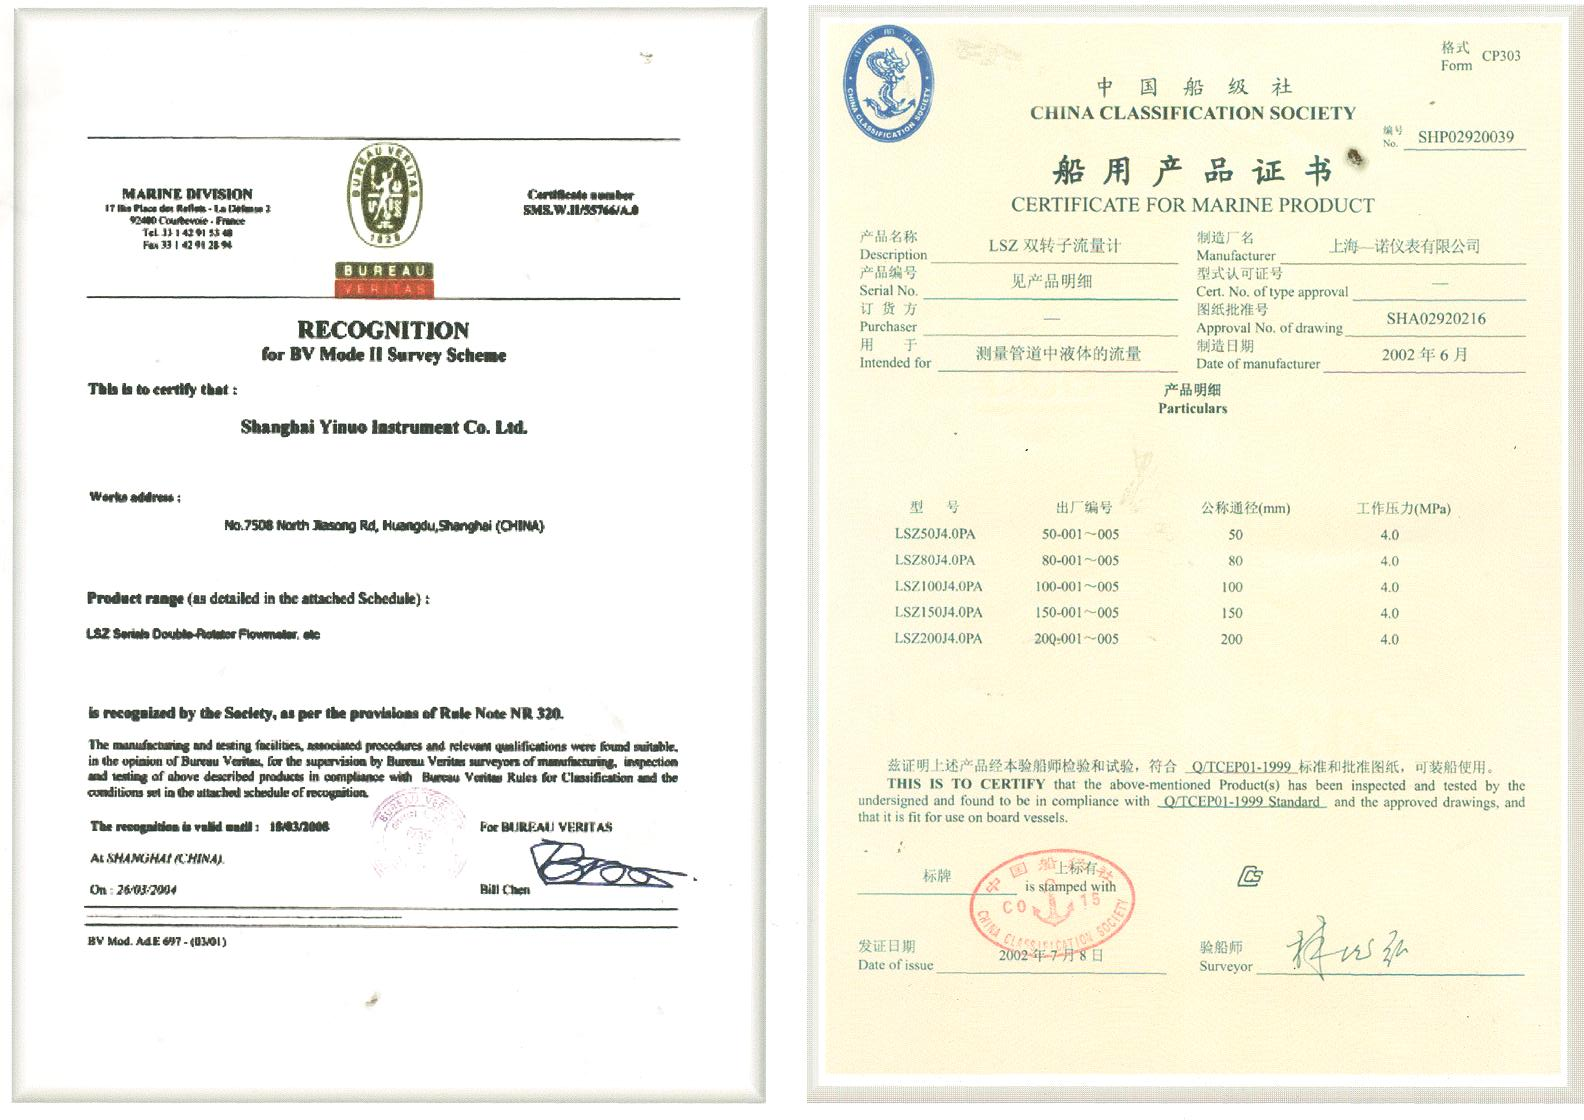 Certificate for Marine Product